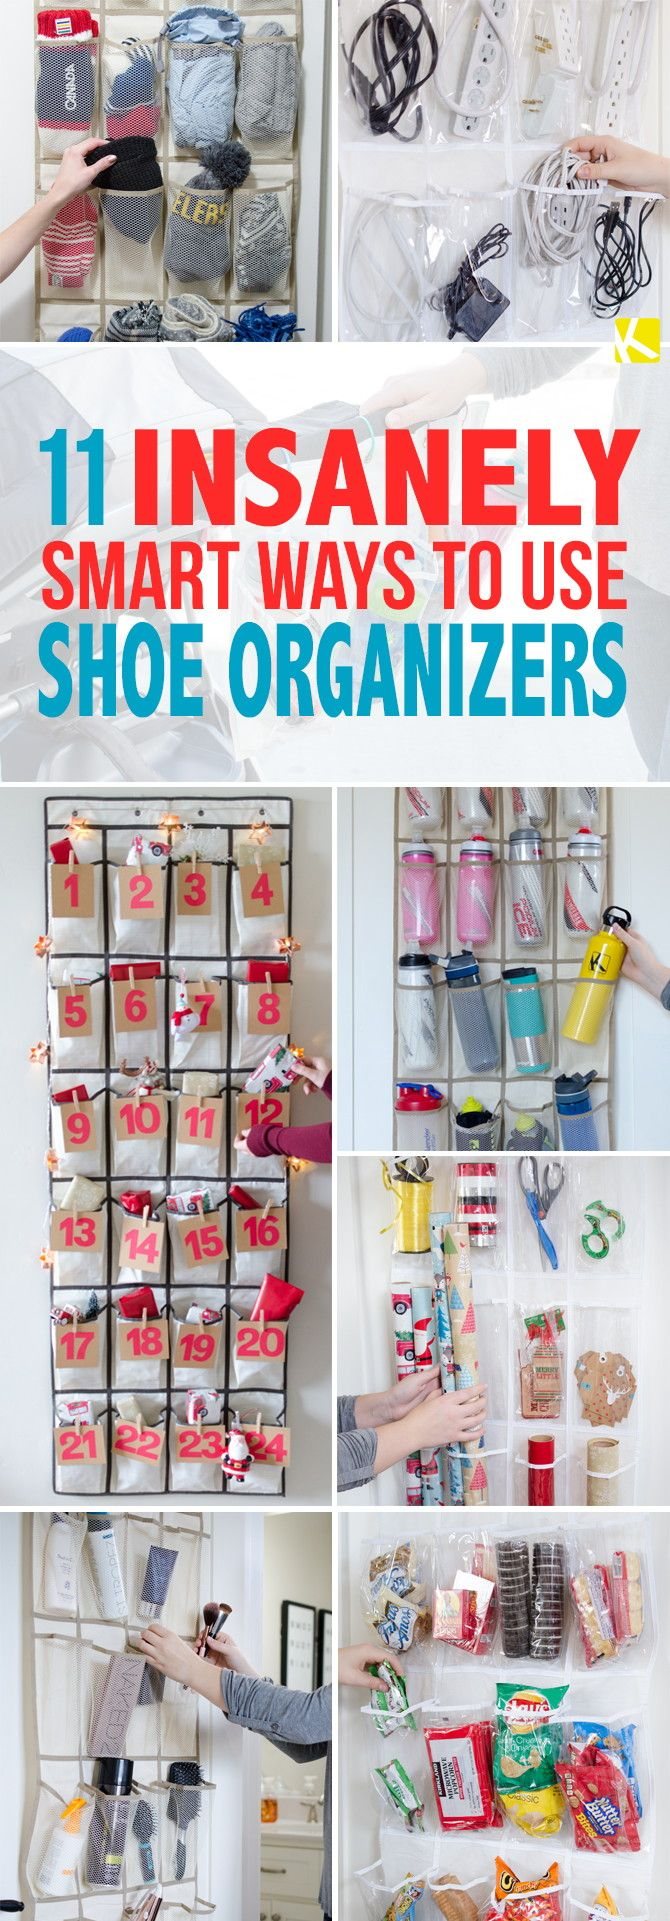 11 Insanely Smart Ways to Use a Shoe Organizer